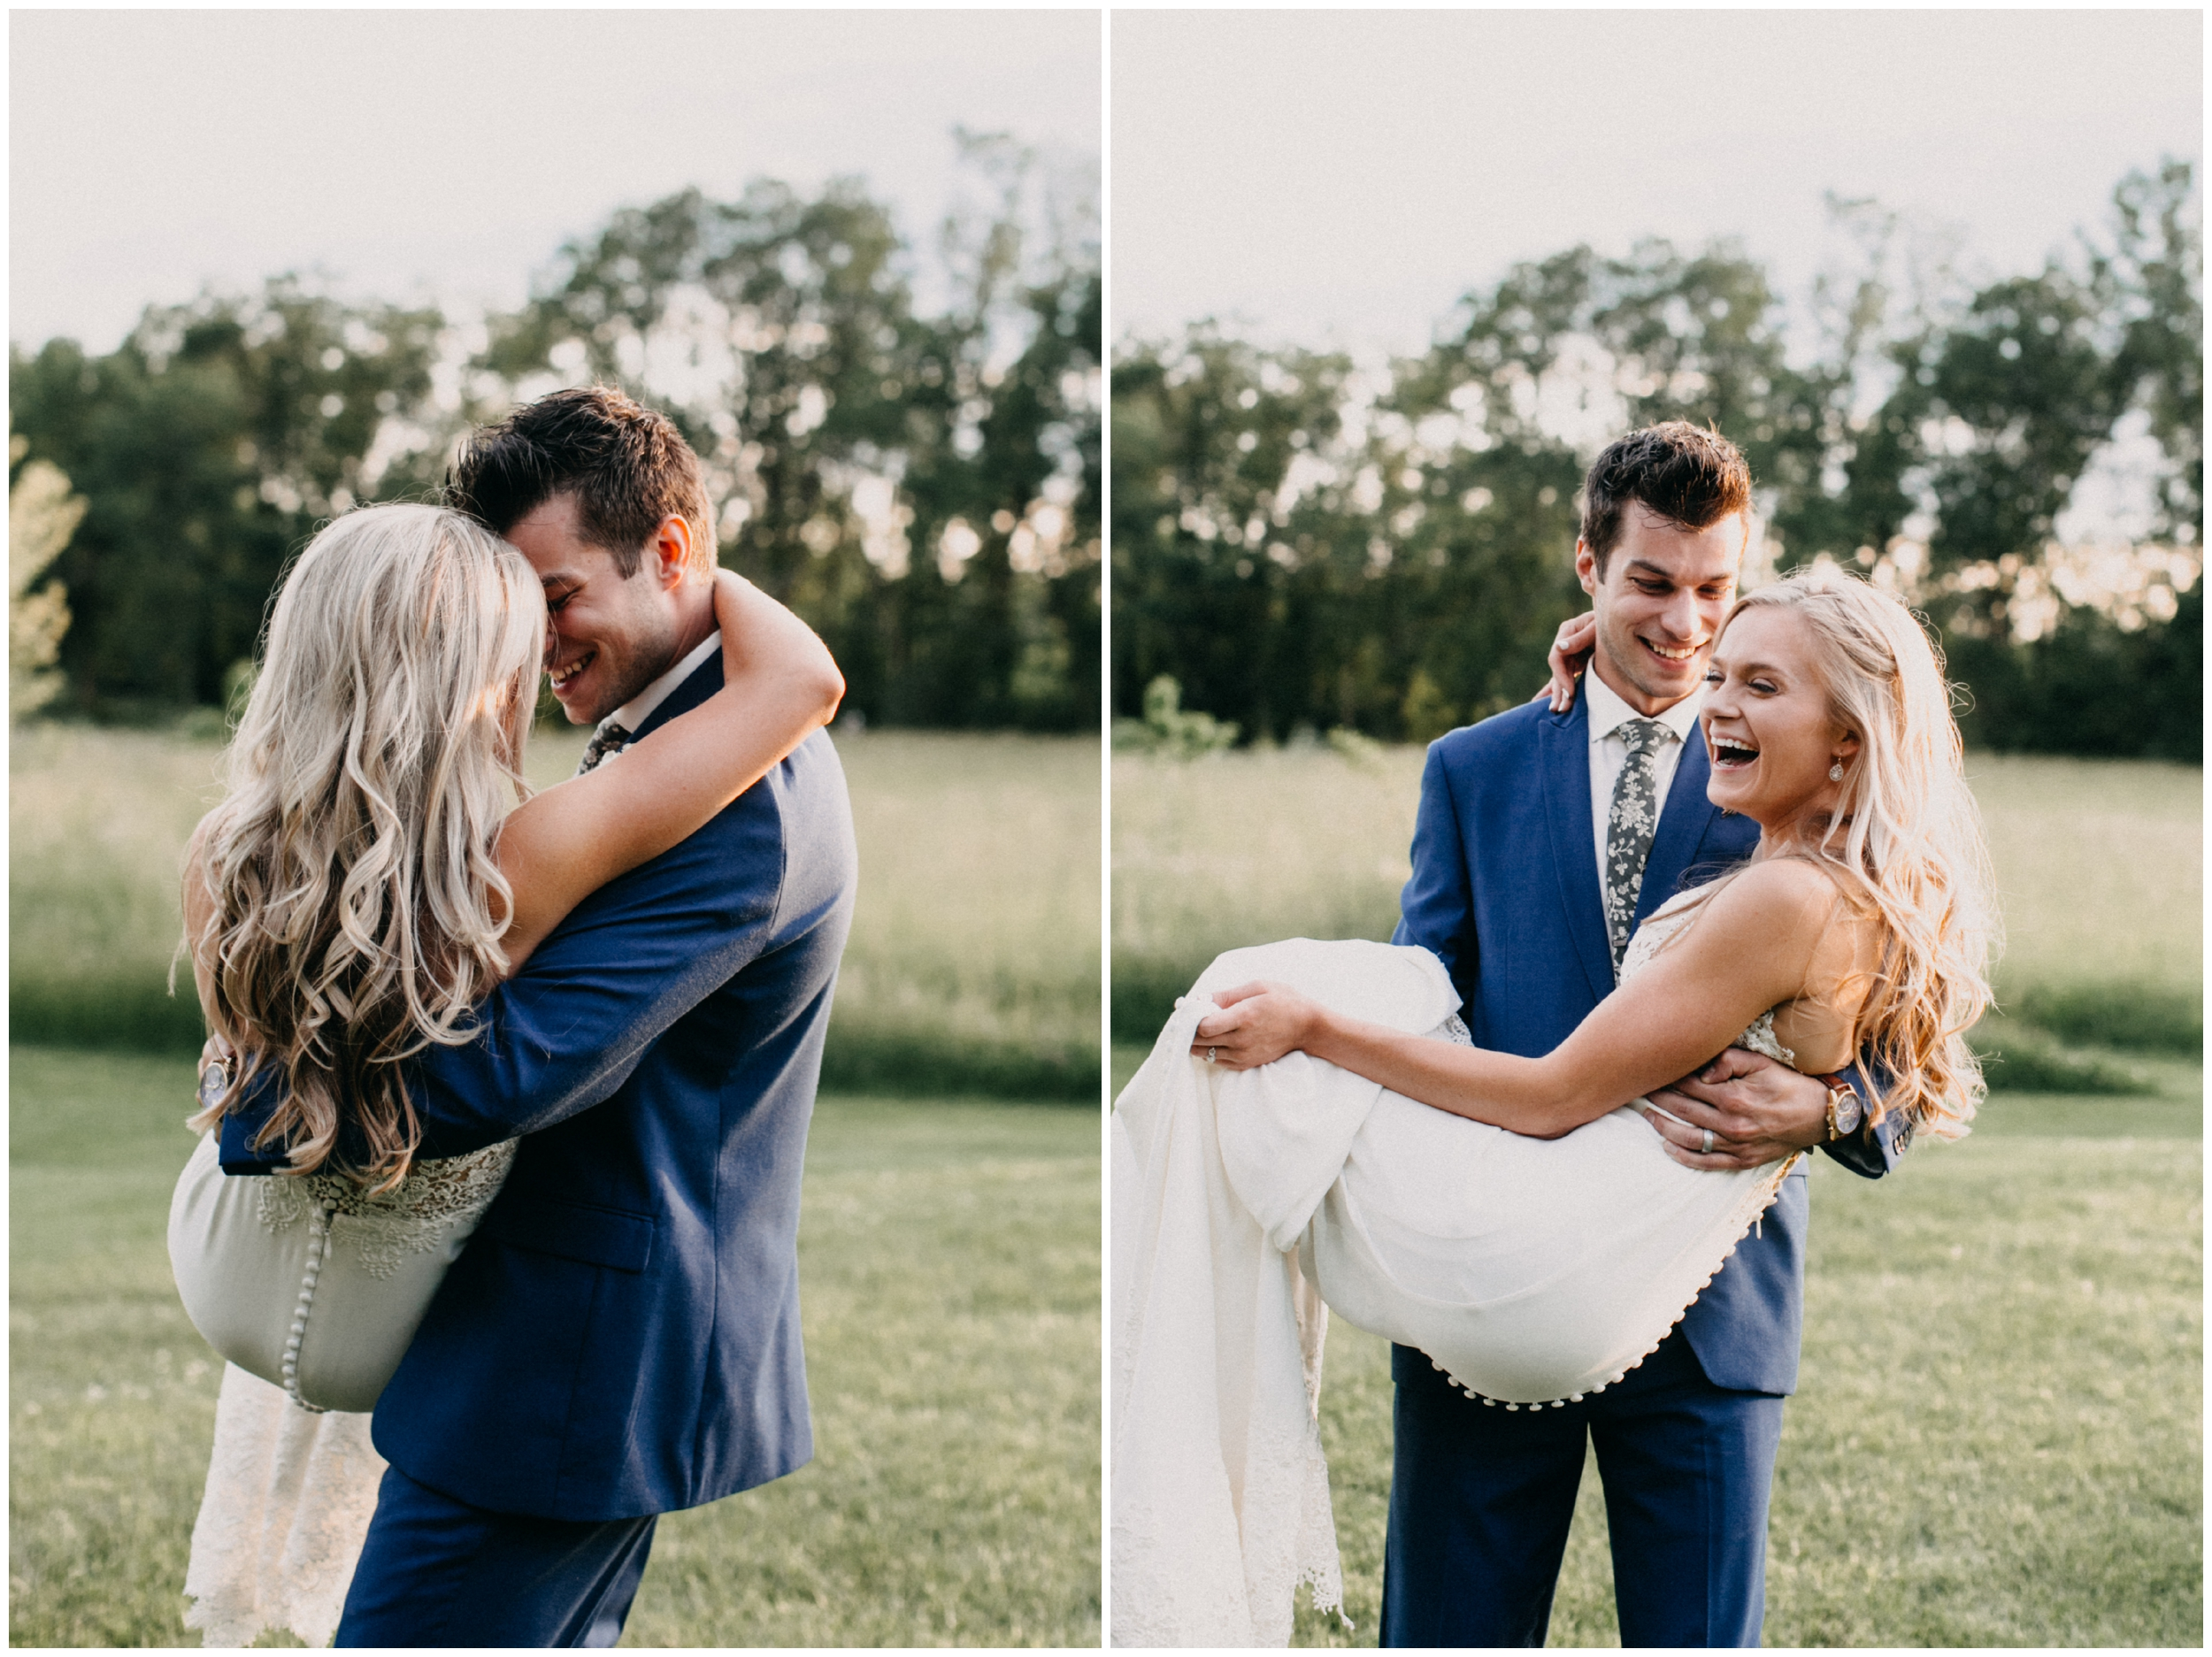 Fun and carefree wedding portraits with bride and groom at Creekside Farm